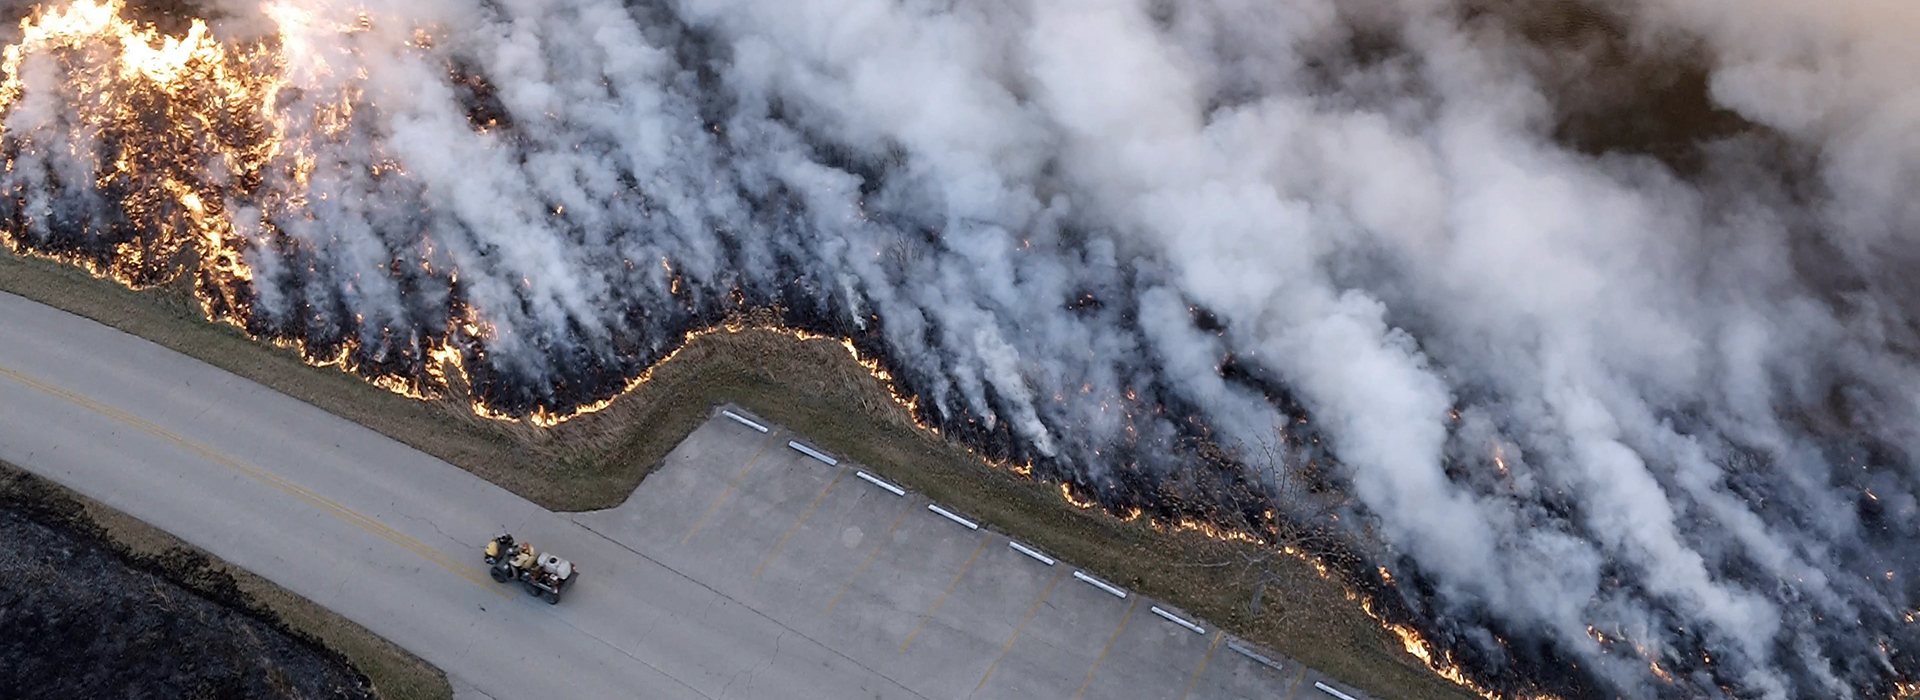 Drone Arrival at prescribed burn at Illinois state park